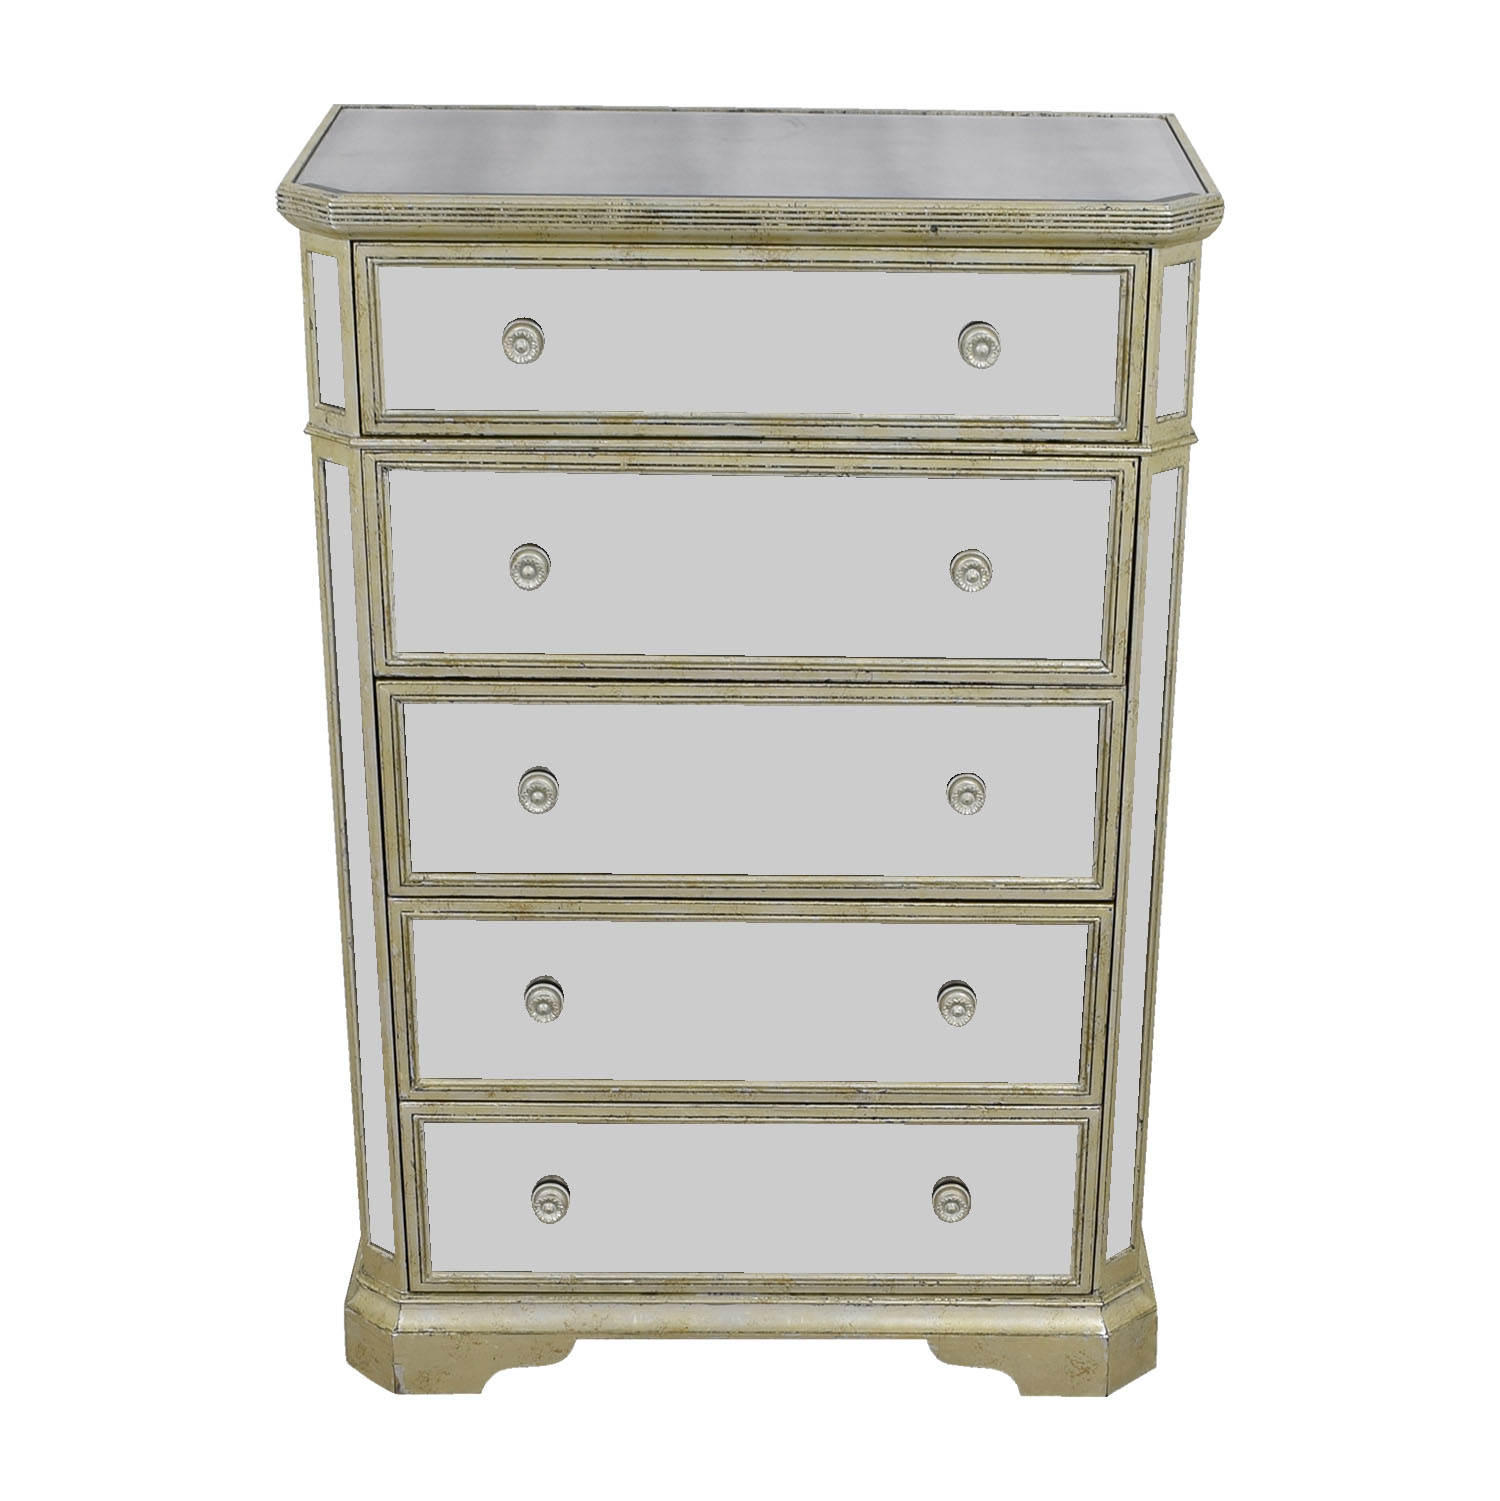 Z Galleries Z Galleries Borghese Five-Drawer Mirrored Chest Dressers